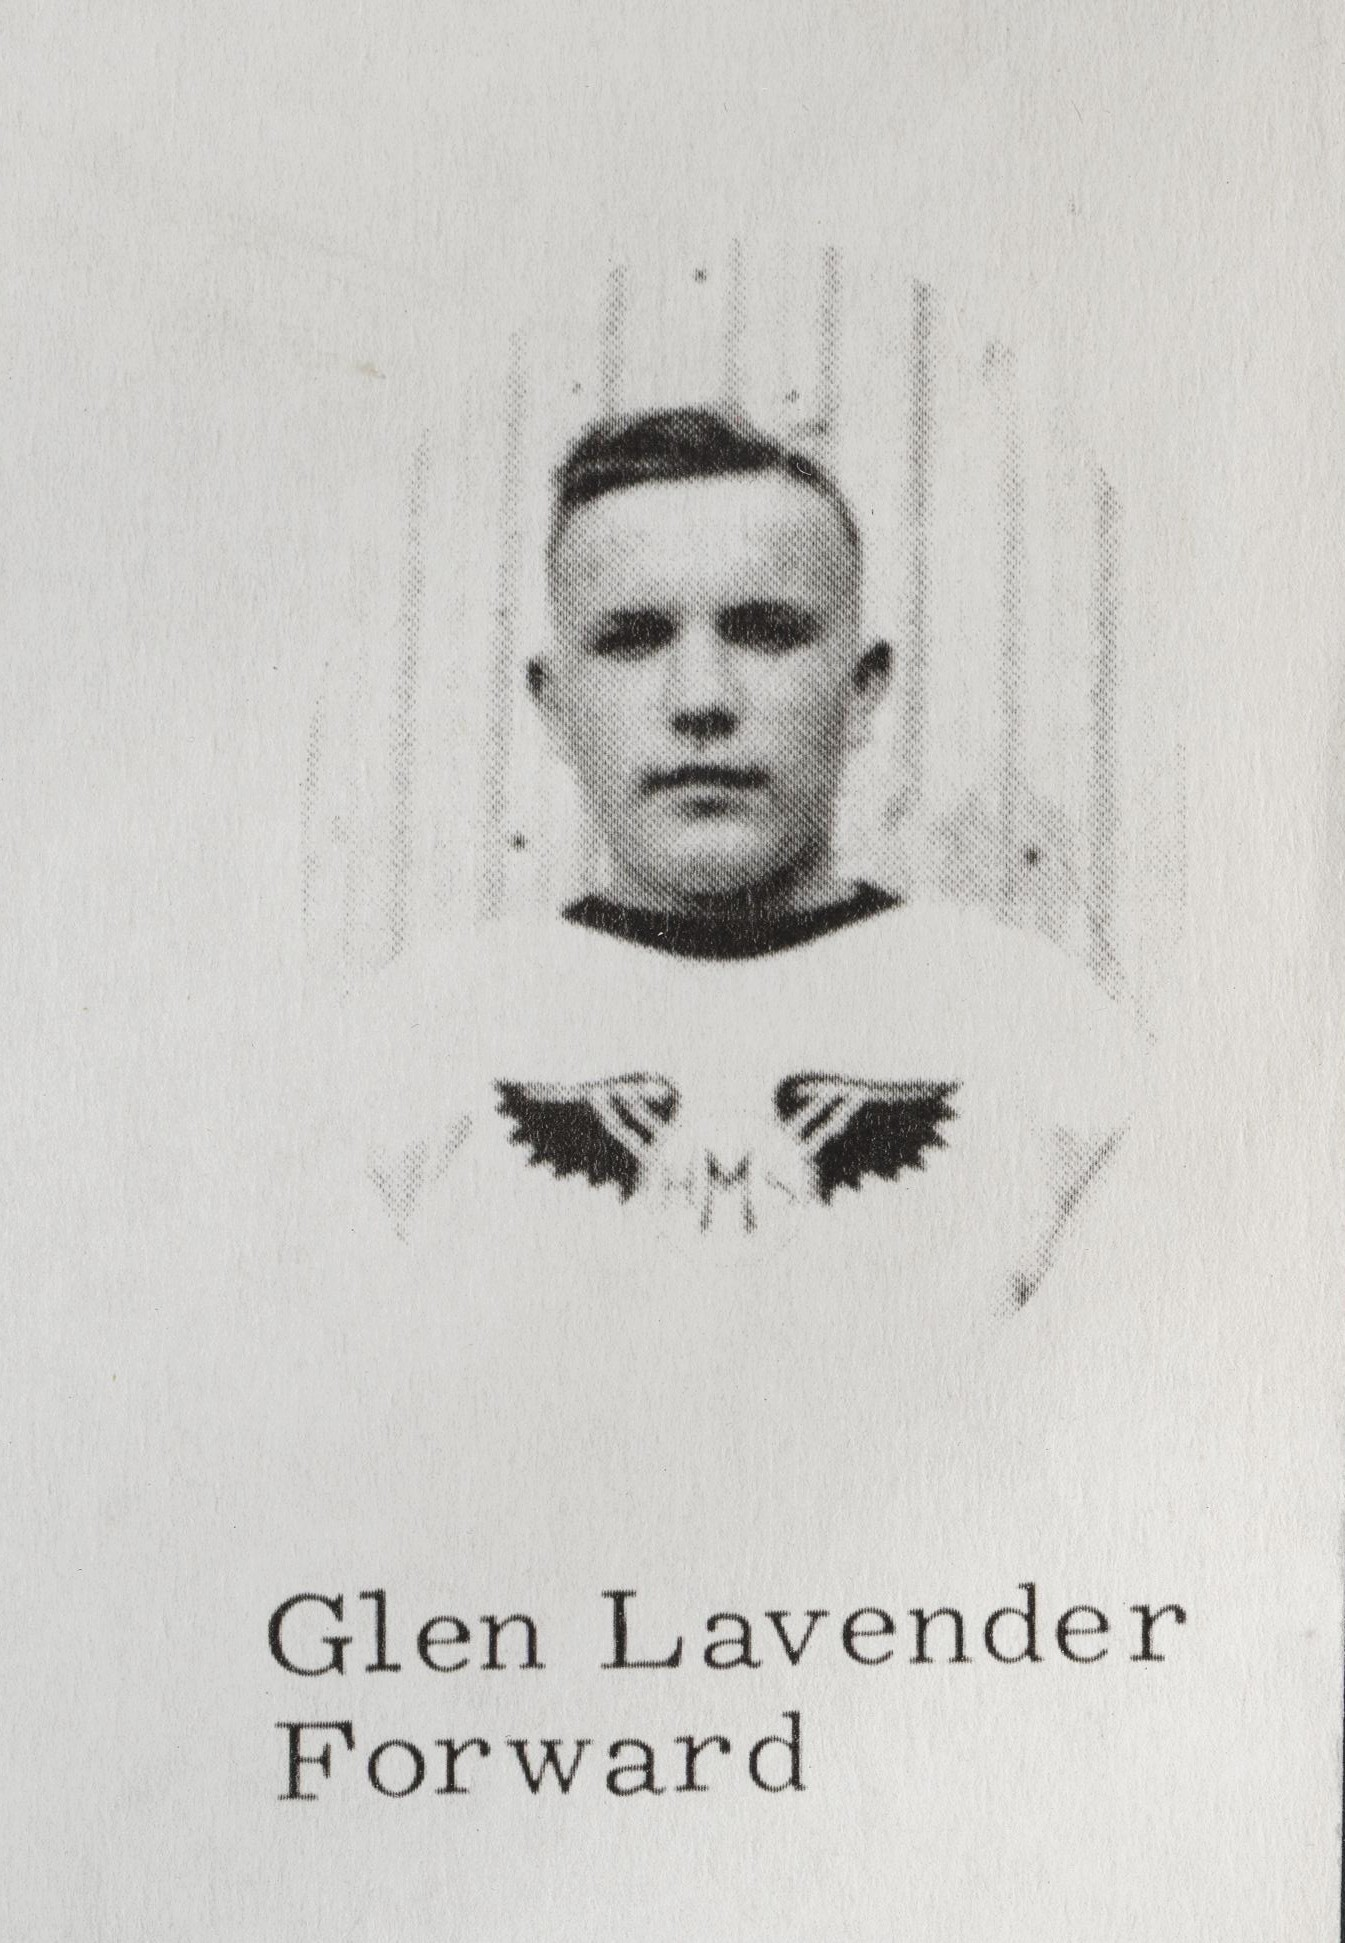 Glen Lavender - Forward.jpg